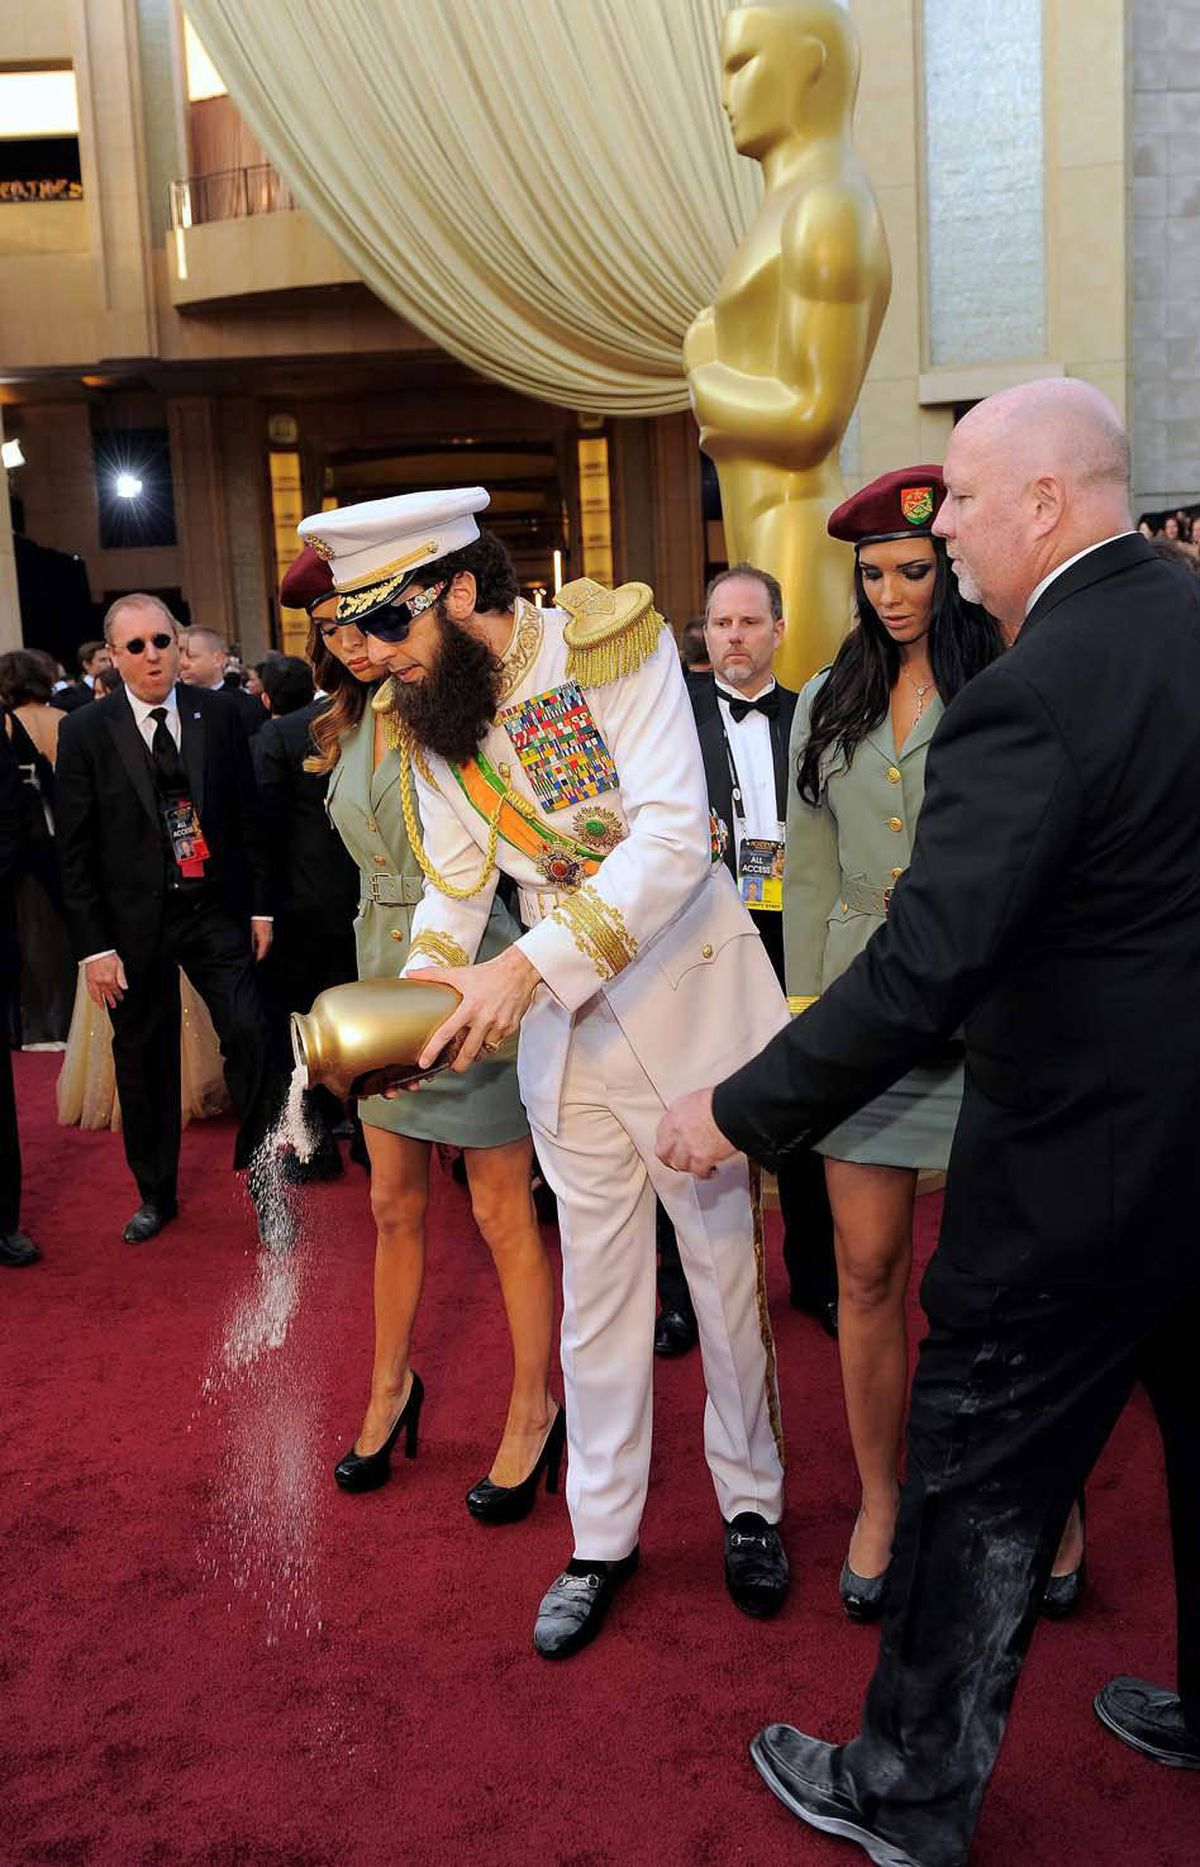 Later, Sacha Baron Cohen pretended to spill the ashes of Kim Jong-Il on the red carpet, causing one security guard to step in when he thought it was the cocaine for Vanity Fair after party.